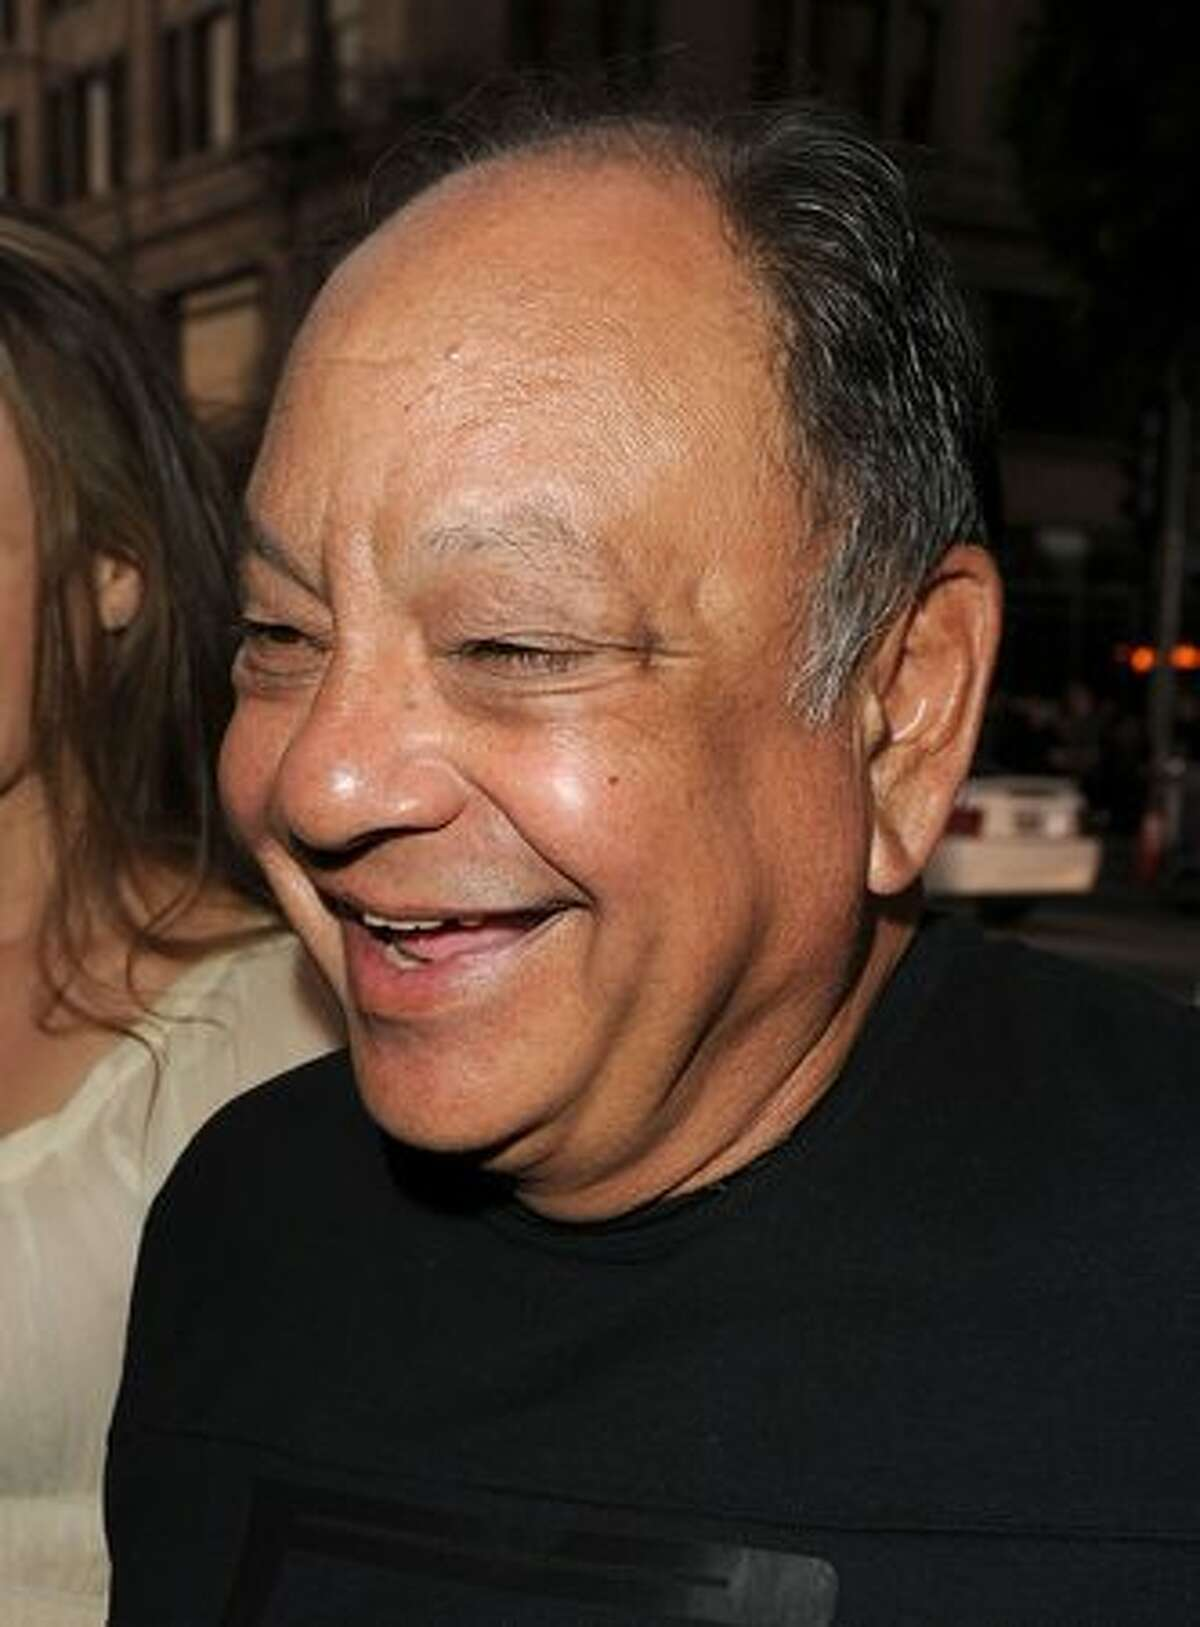 Actor Cheech Marin arrives at 20th Century Fox's screening of